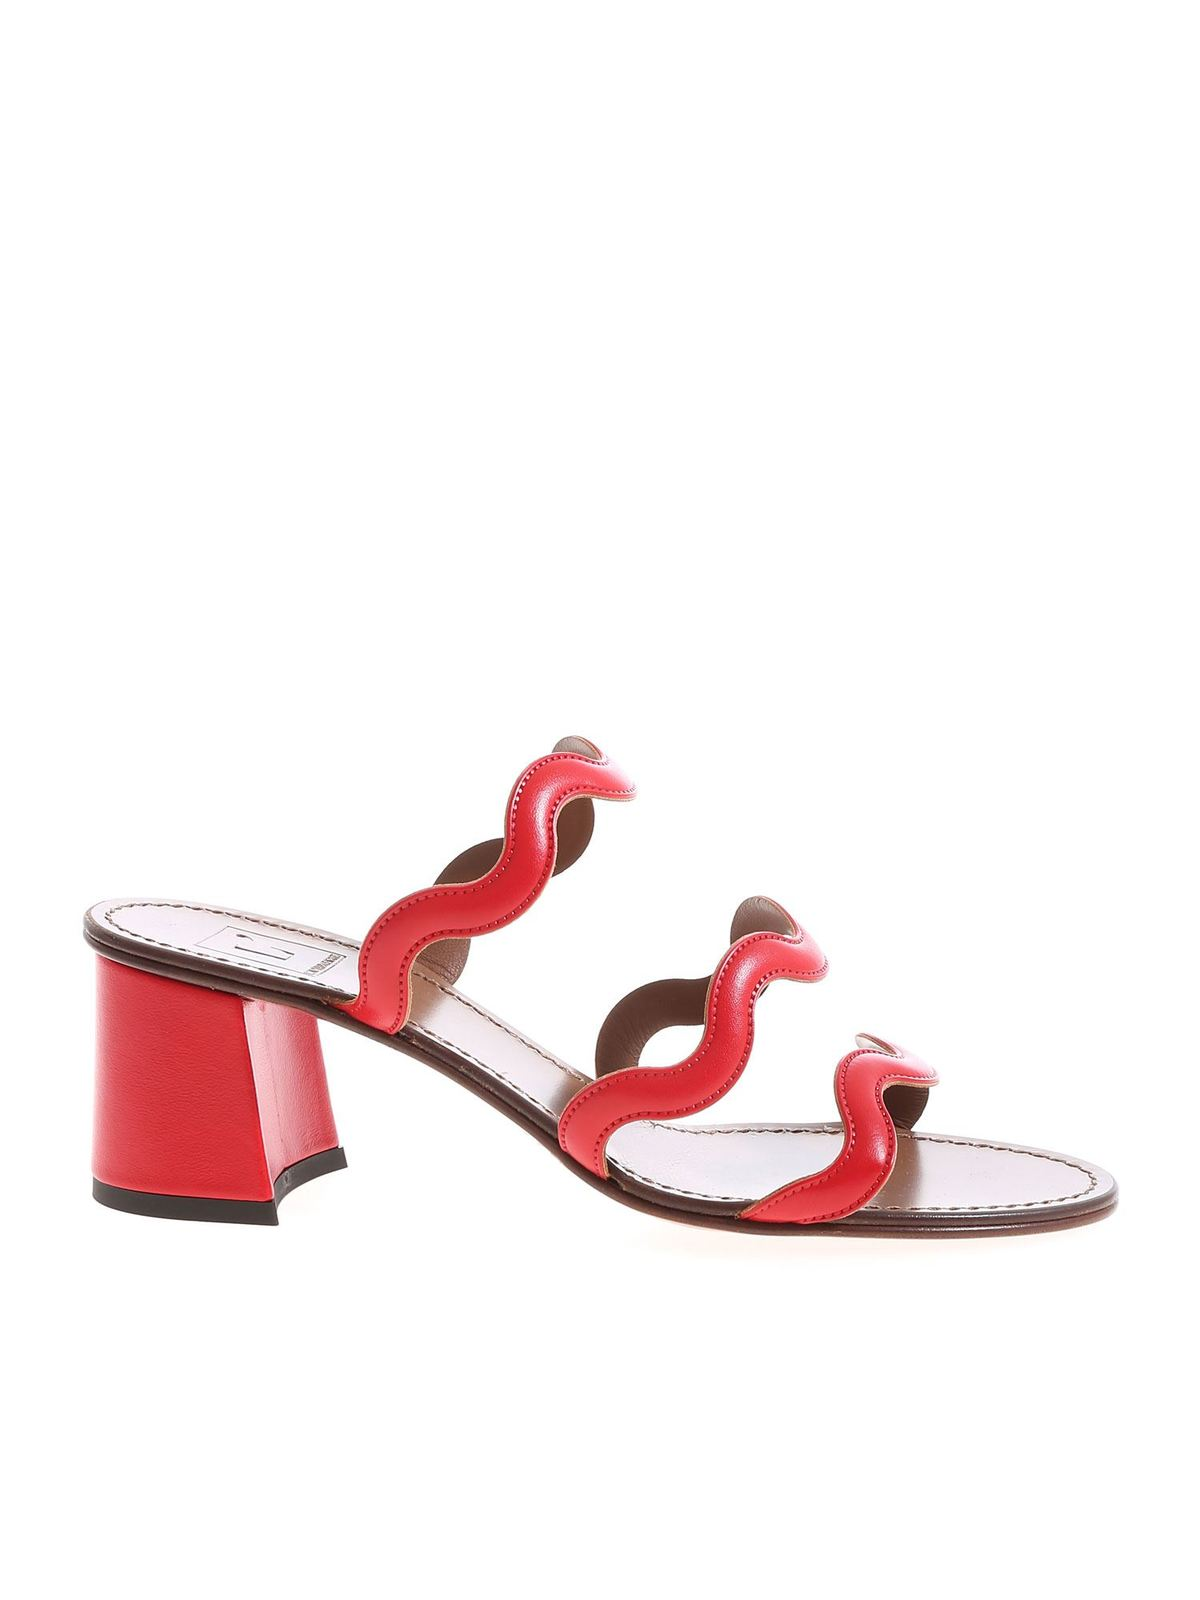 L'autre Chose Leathers BANDS SANDALS IN RED